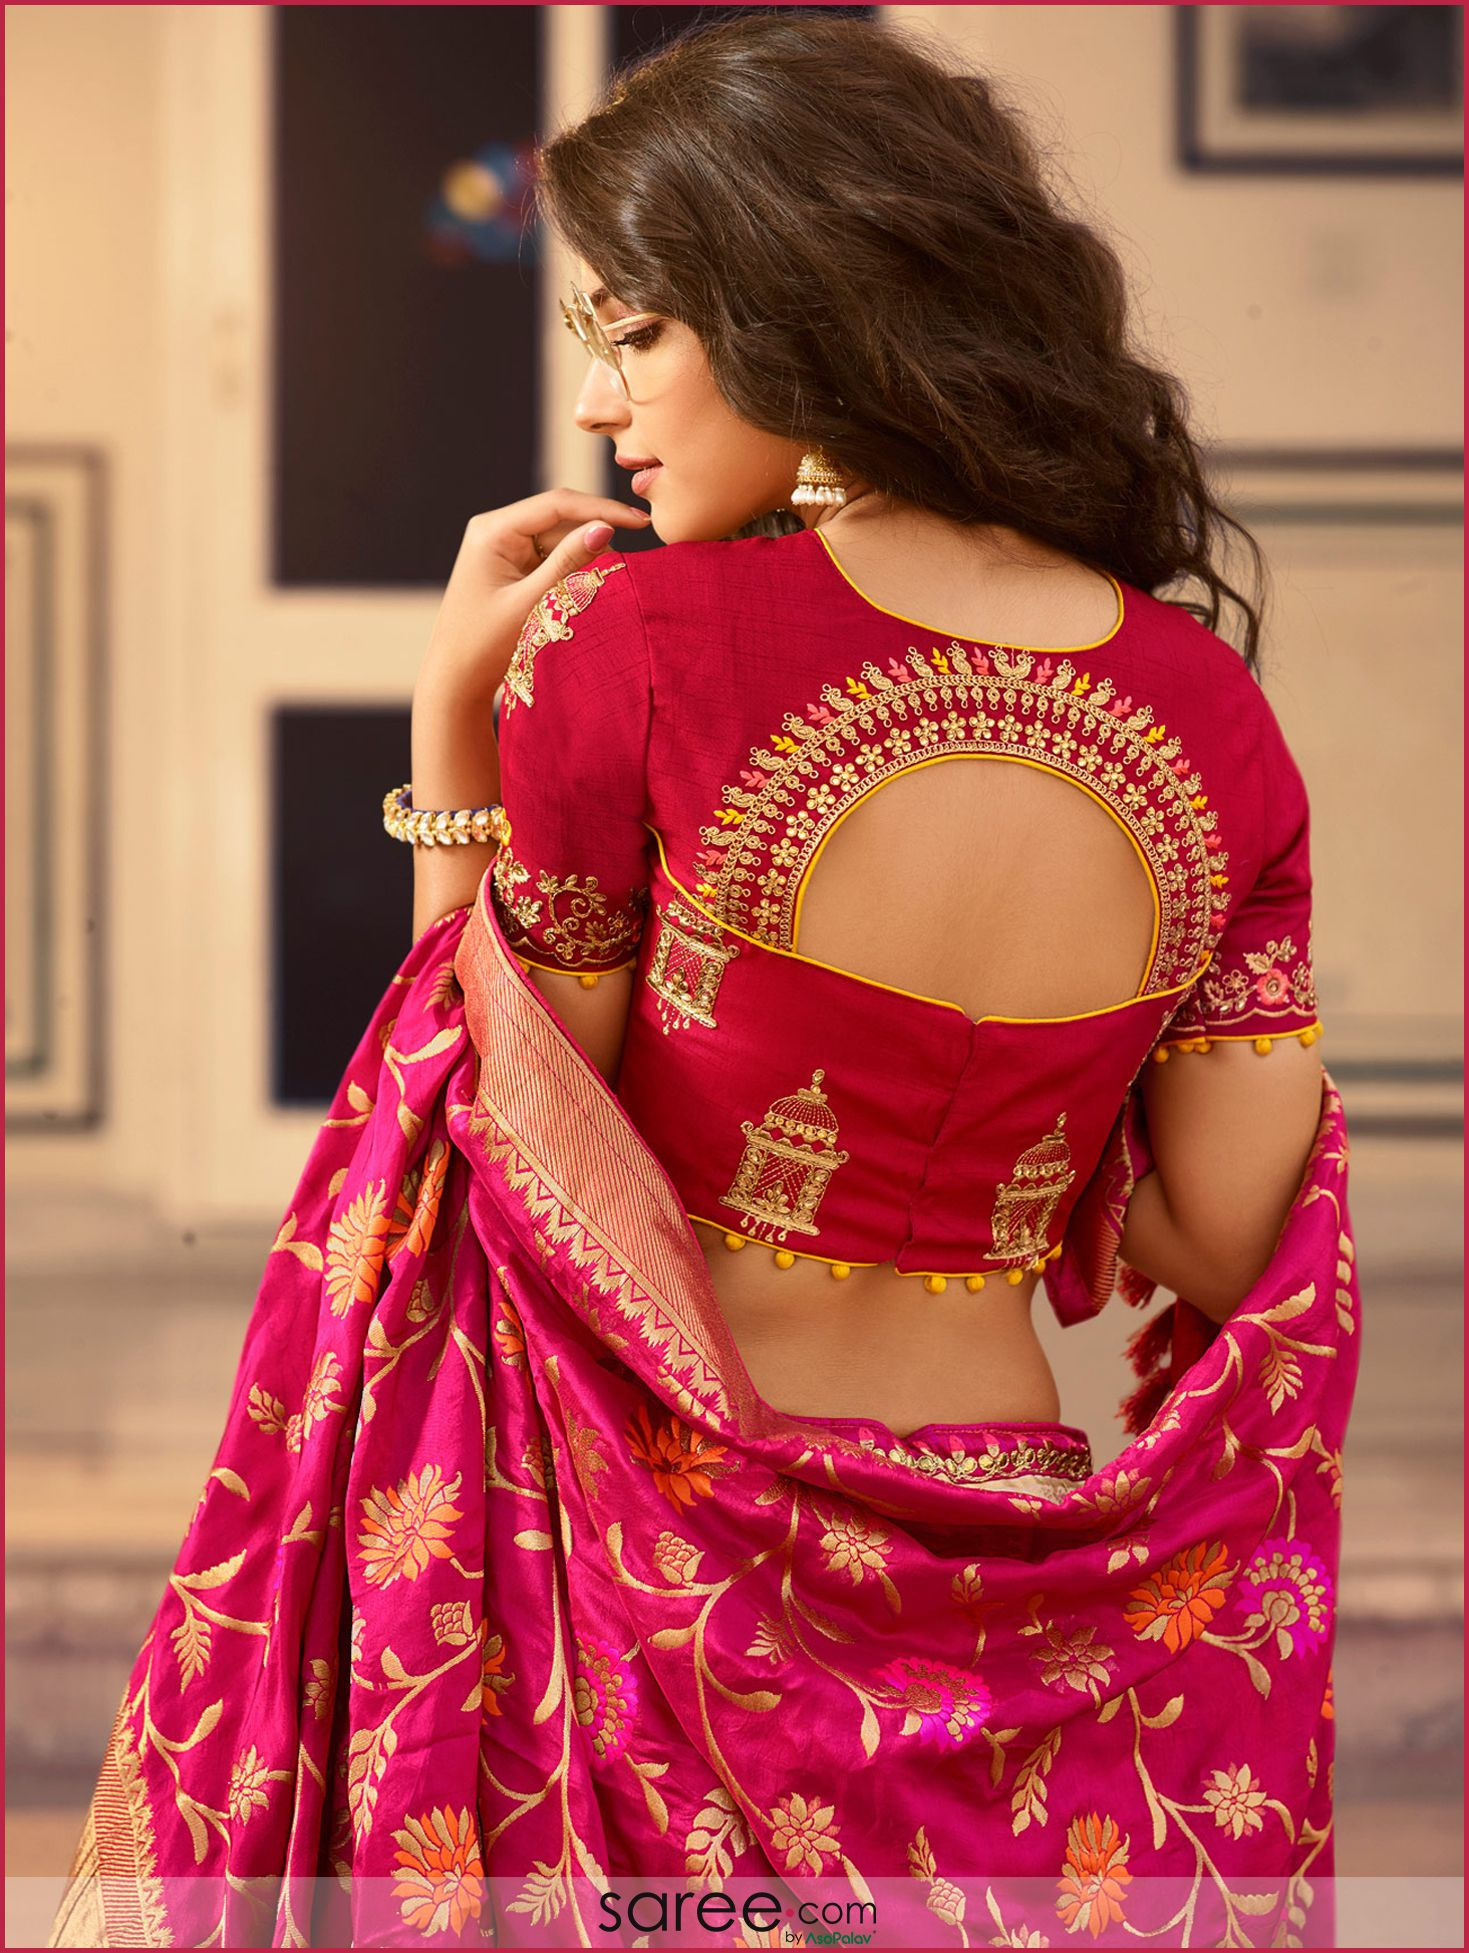 Pin By Bina1949 On Mm Blouse Bridal Blouse Designs Fancy Blouse Designs Stylish Blouse Design